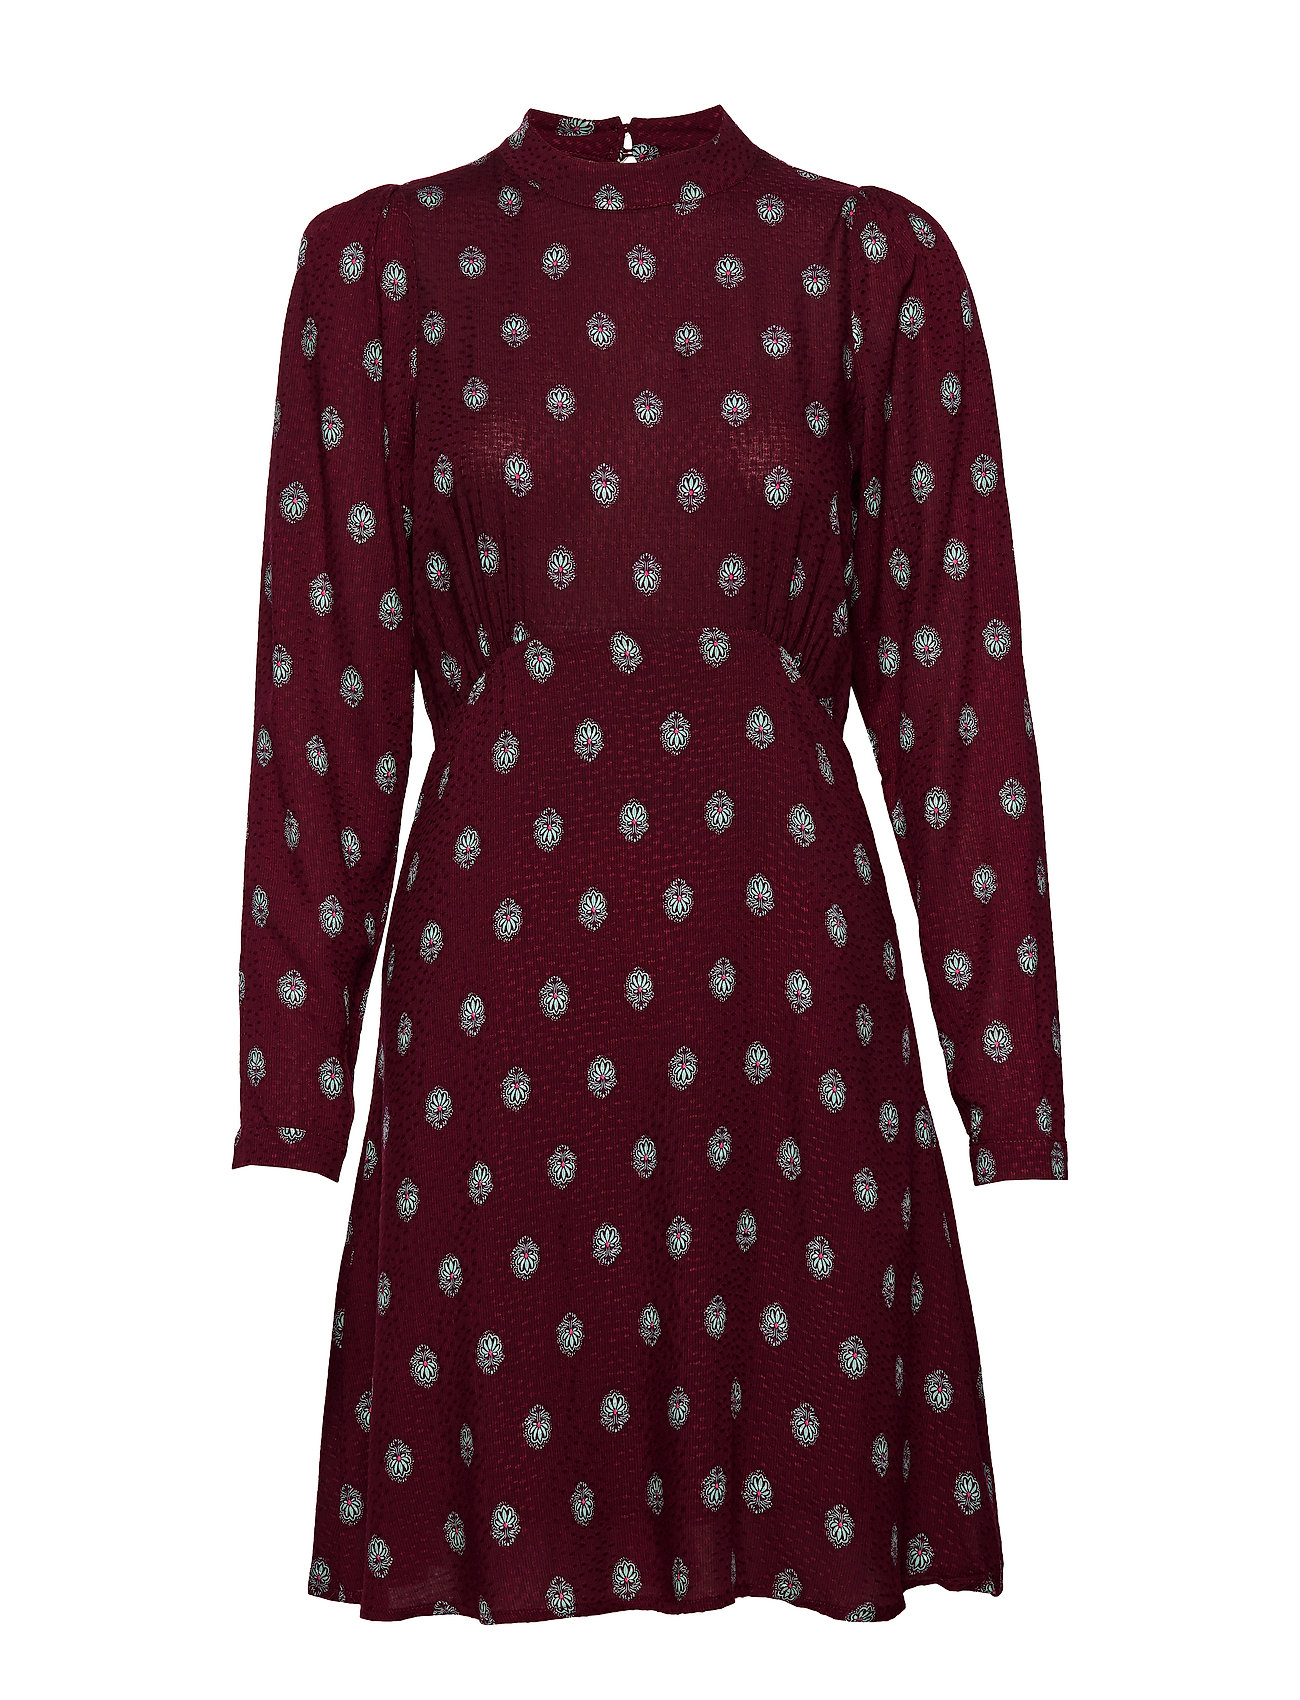 Vila VIRIKOADIGITALIS L/S DRESS - TAWNY PORT